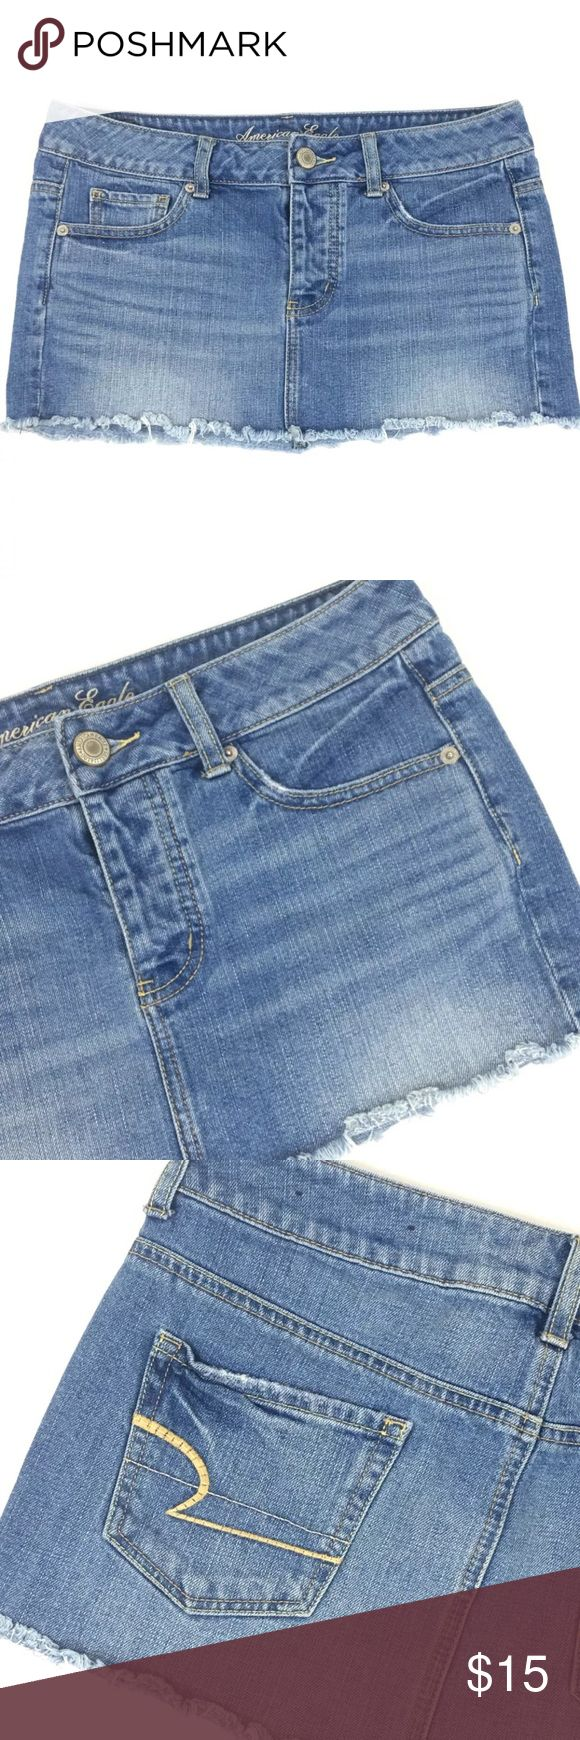 """🎉American Eagle Outfitters Cut Off Denim Skirt 4 American Eagle Outfitters Womens Cut Off Denim Skirt 4 Light Wash Distressed  💥SPECIAL OFFER💥 💰Save 20% On Bundles of 2 or More  (See Pictures for More Details)  Approximate Measurements: ▪️Length: 10.5"""" ▪️Waist: 16"""" ▪️Hips: 16"""" Tip: Please Measure Your Favorite Skirt and Compare Measurements To Ensure Proper Fit  💌Please Reach Out With Any Questions  🚫Sorry No Trades  Thank You For Checking Out My Closet🤘🏼🌵 American Eagle Outfitters…"""